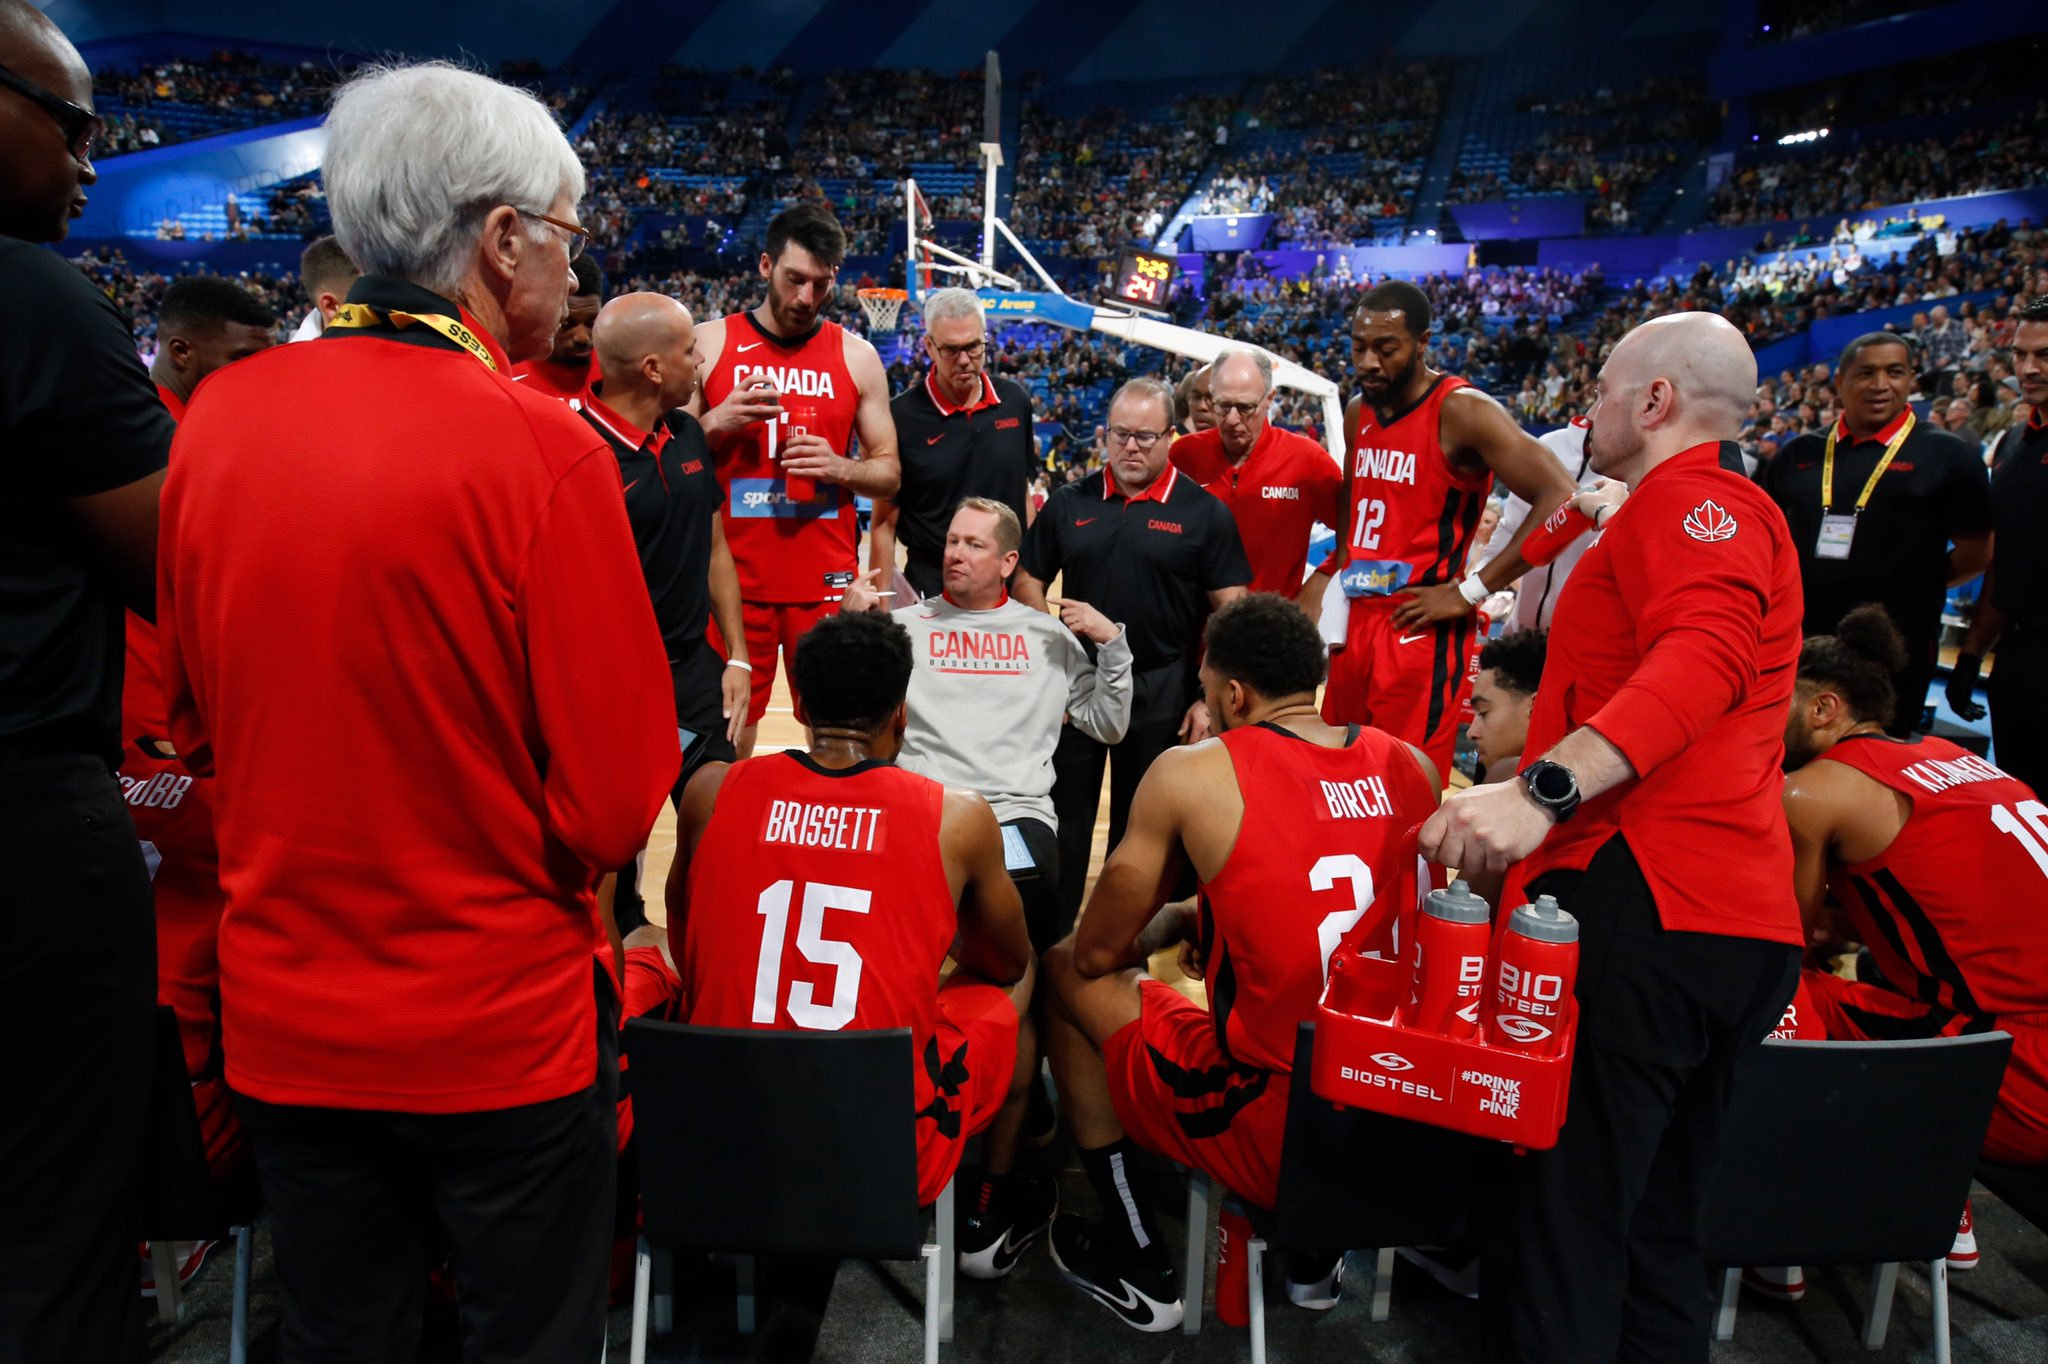 Canada downs New Zealand as International Basketball Series shifts to Sydney